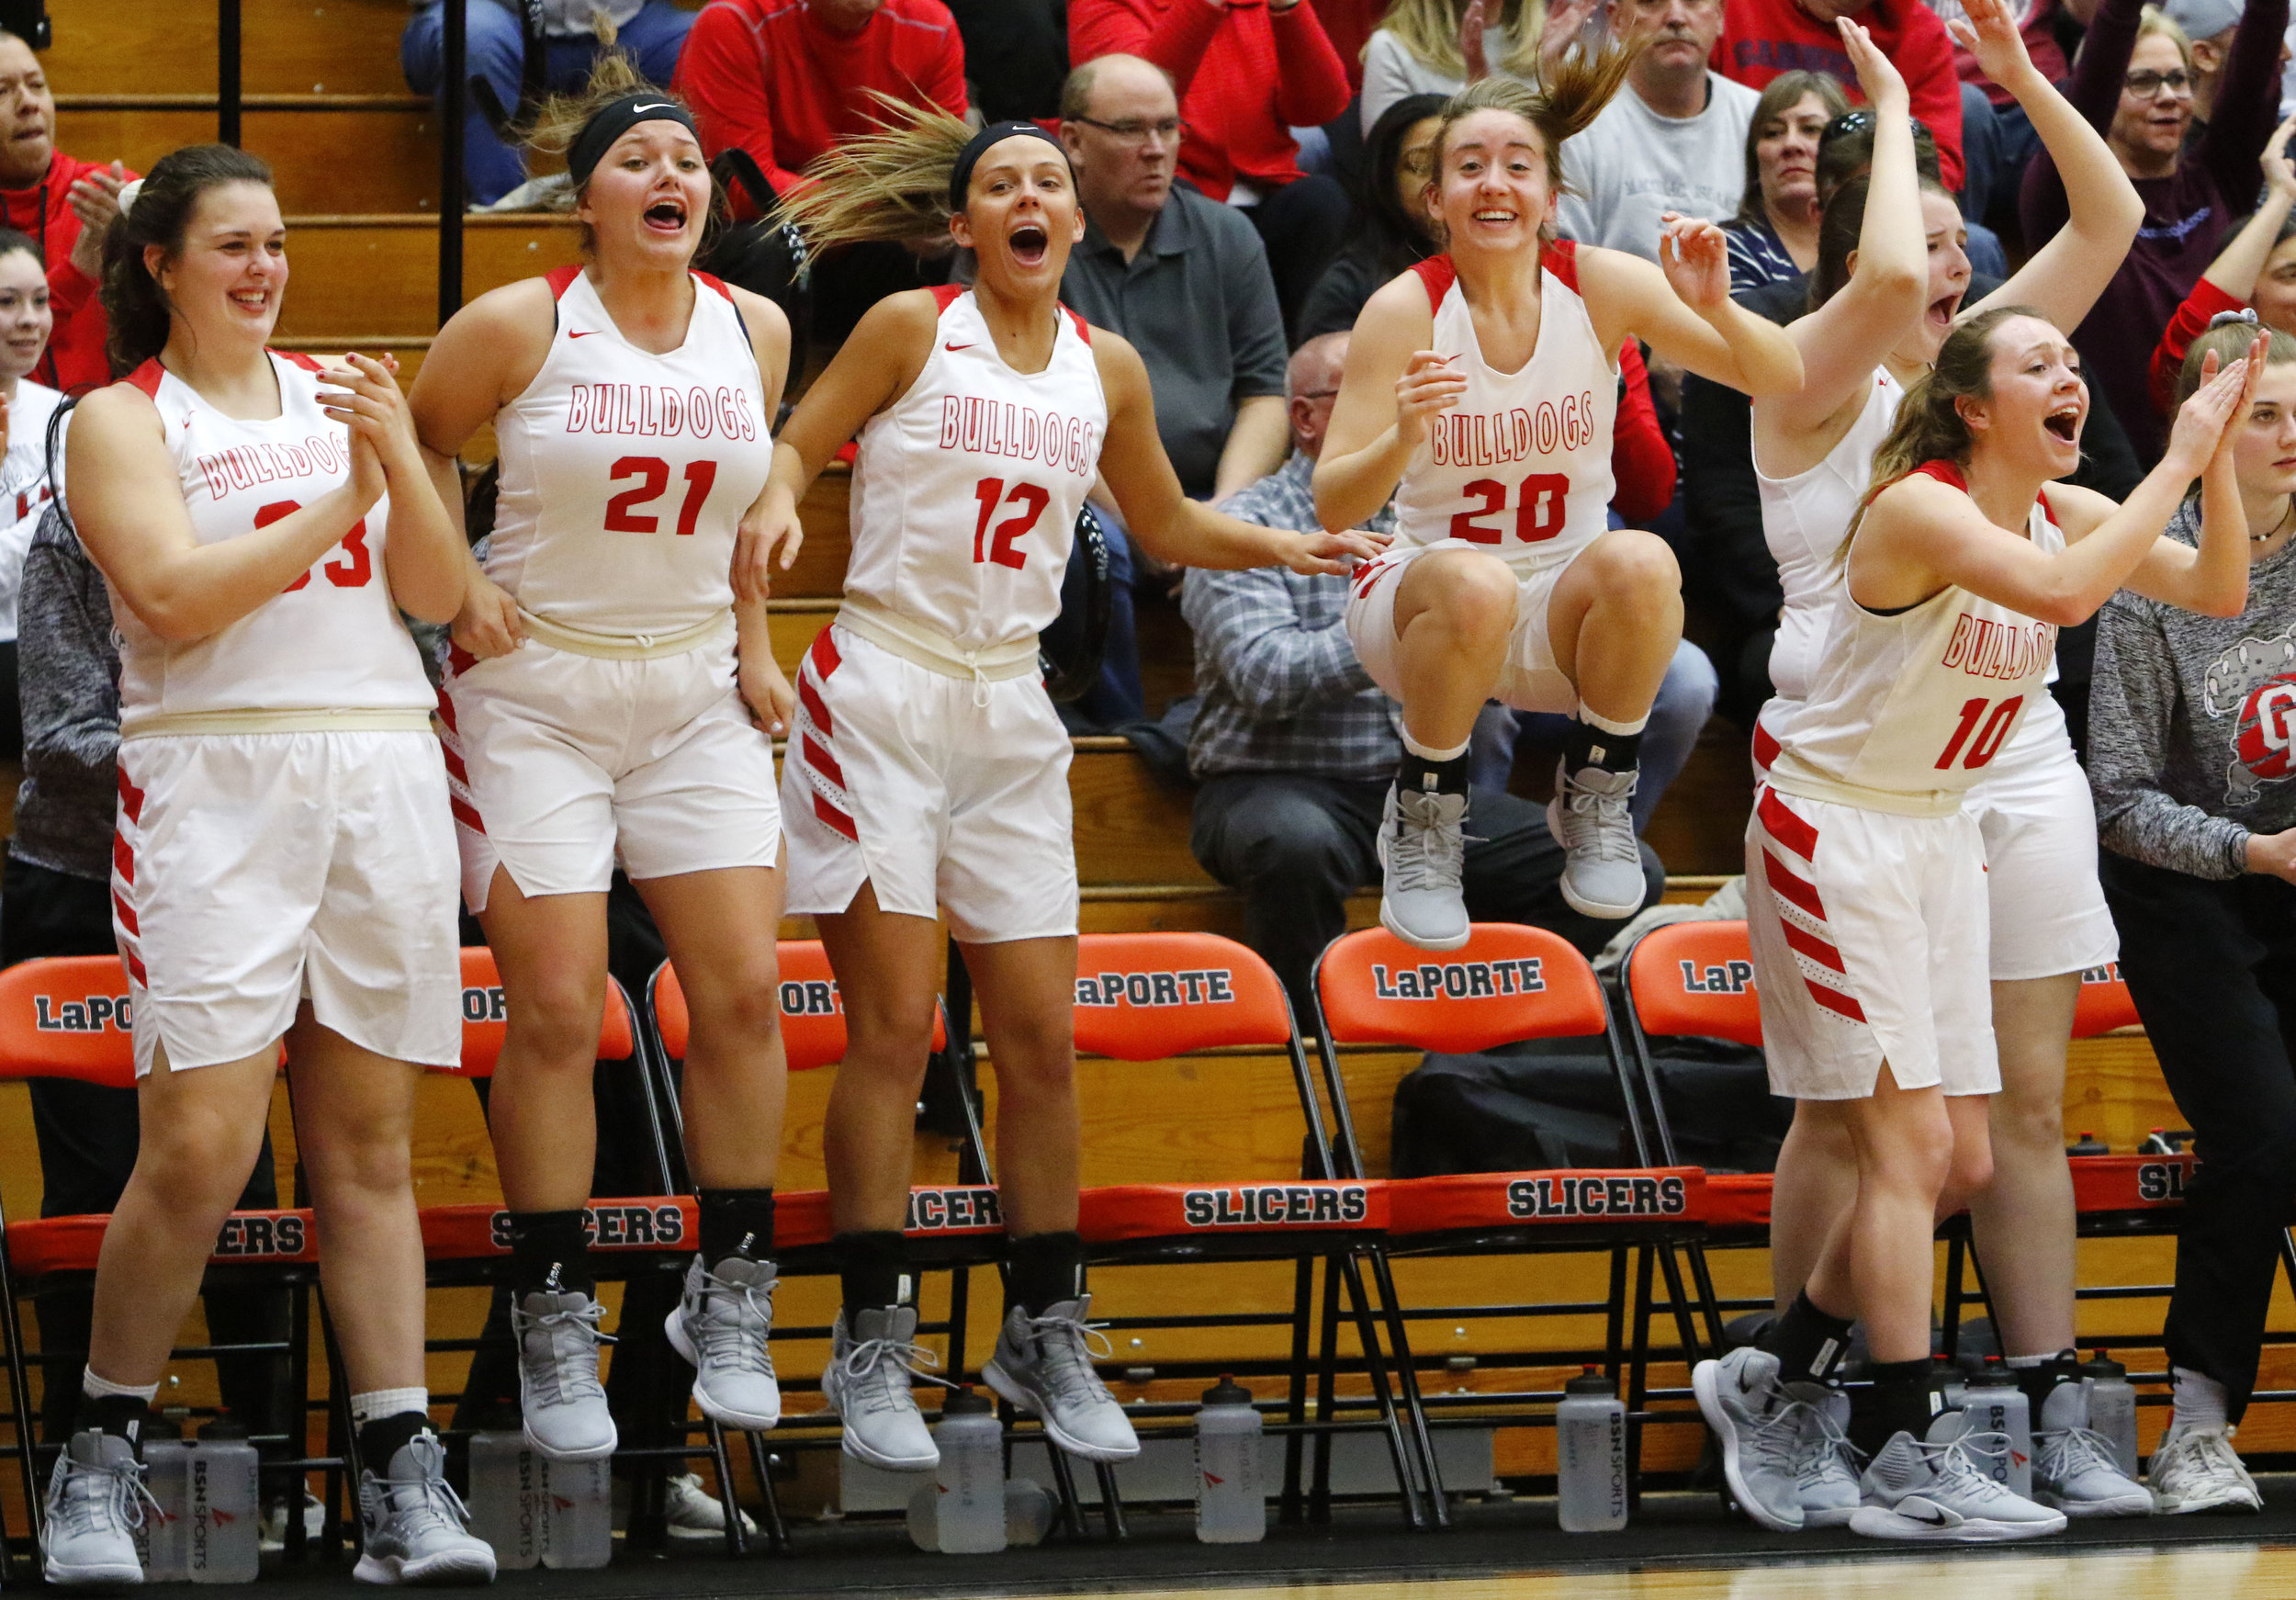 Crown Point's bench reacts after the team scored against Penn during a Class 4A regional final at LaPorte High School.